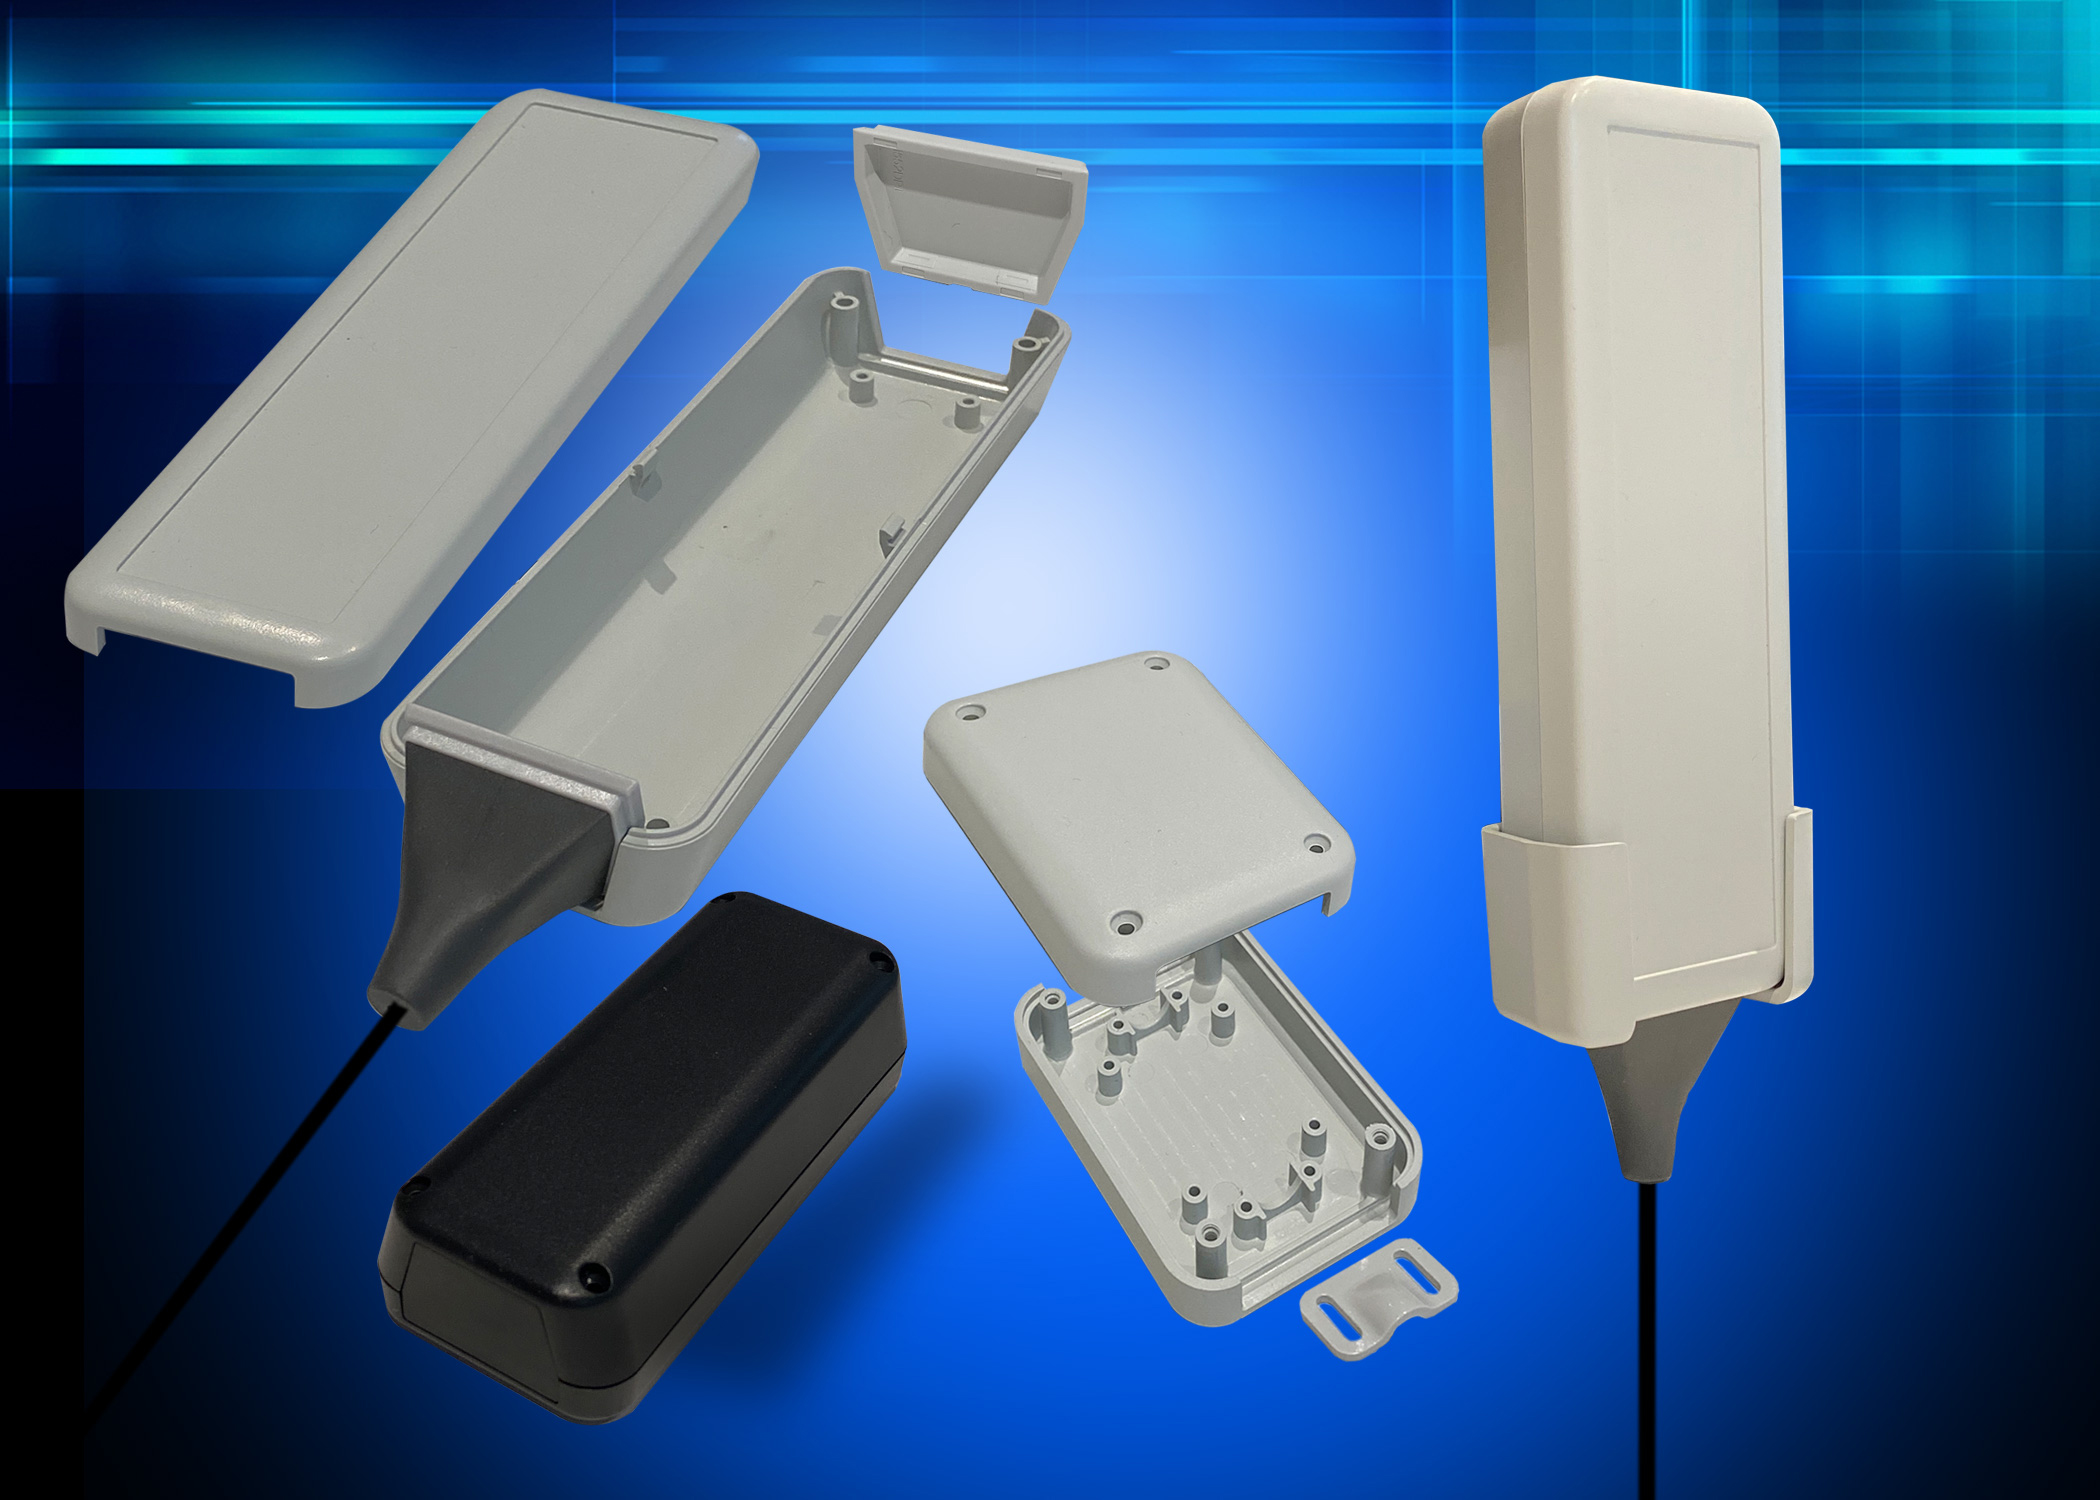 Bürklin stocking new hand-held enclosures from Hammond Electronics